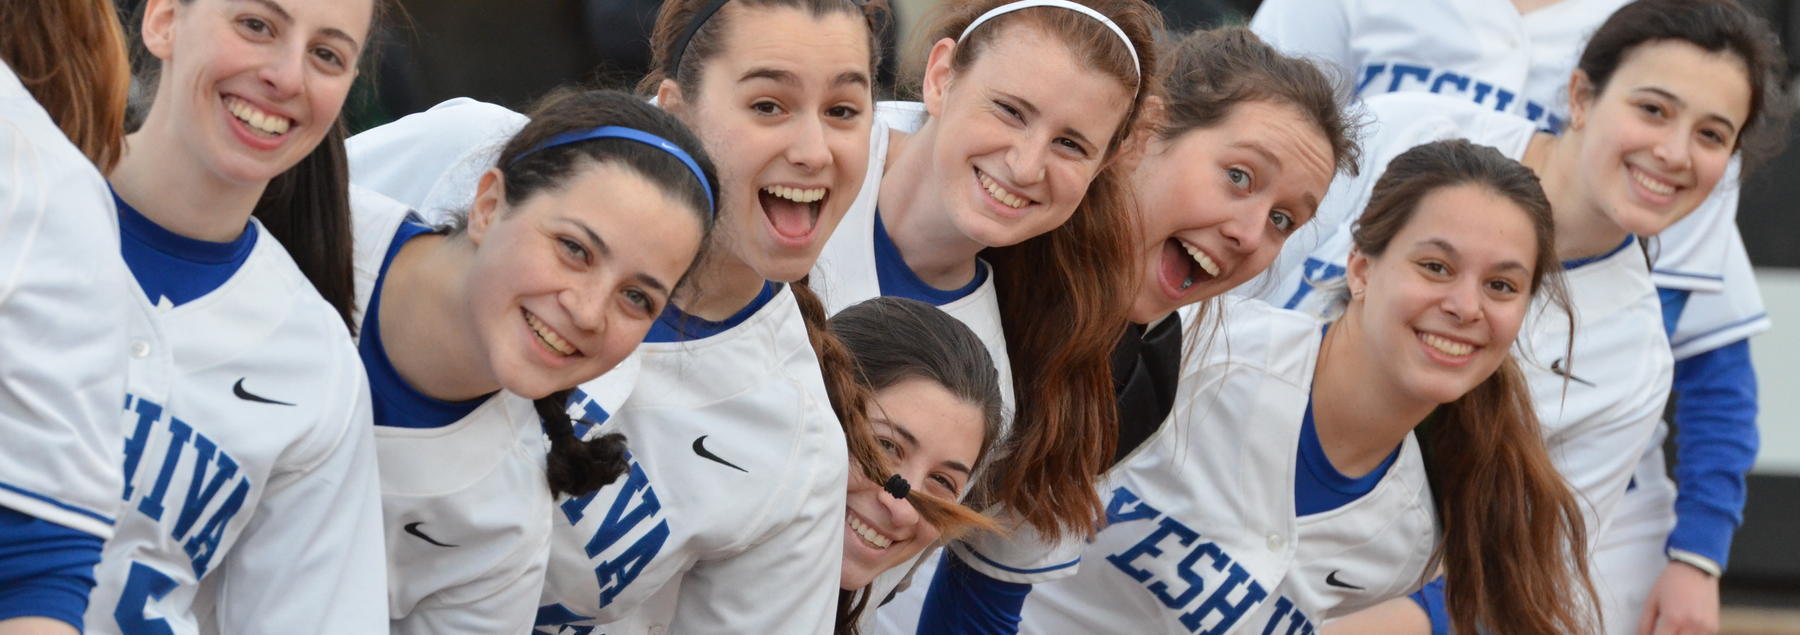 yeshiva women on a sports team